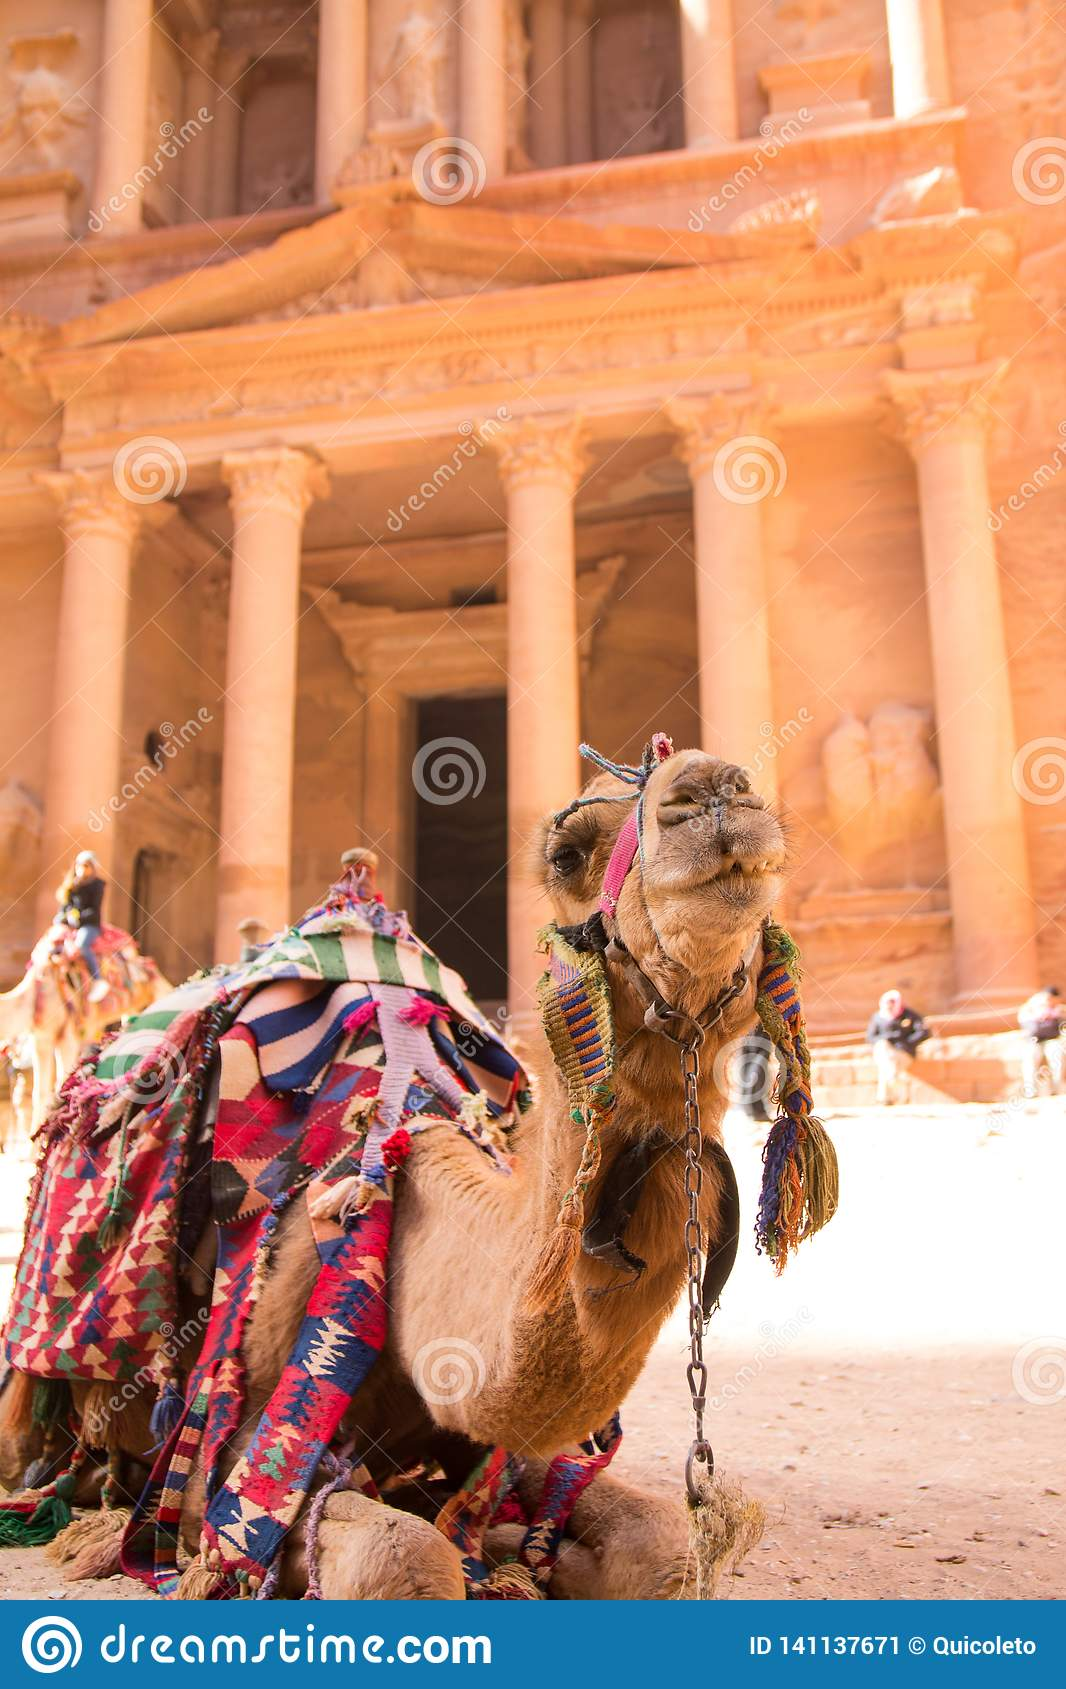 A portrait of a camel in Petra